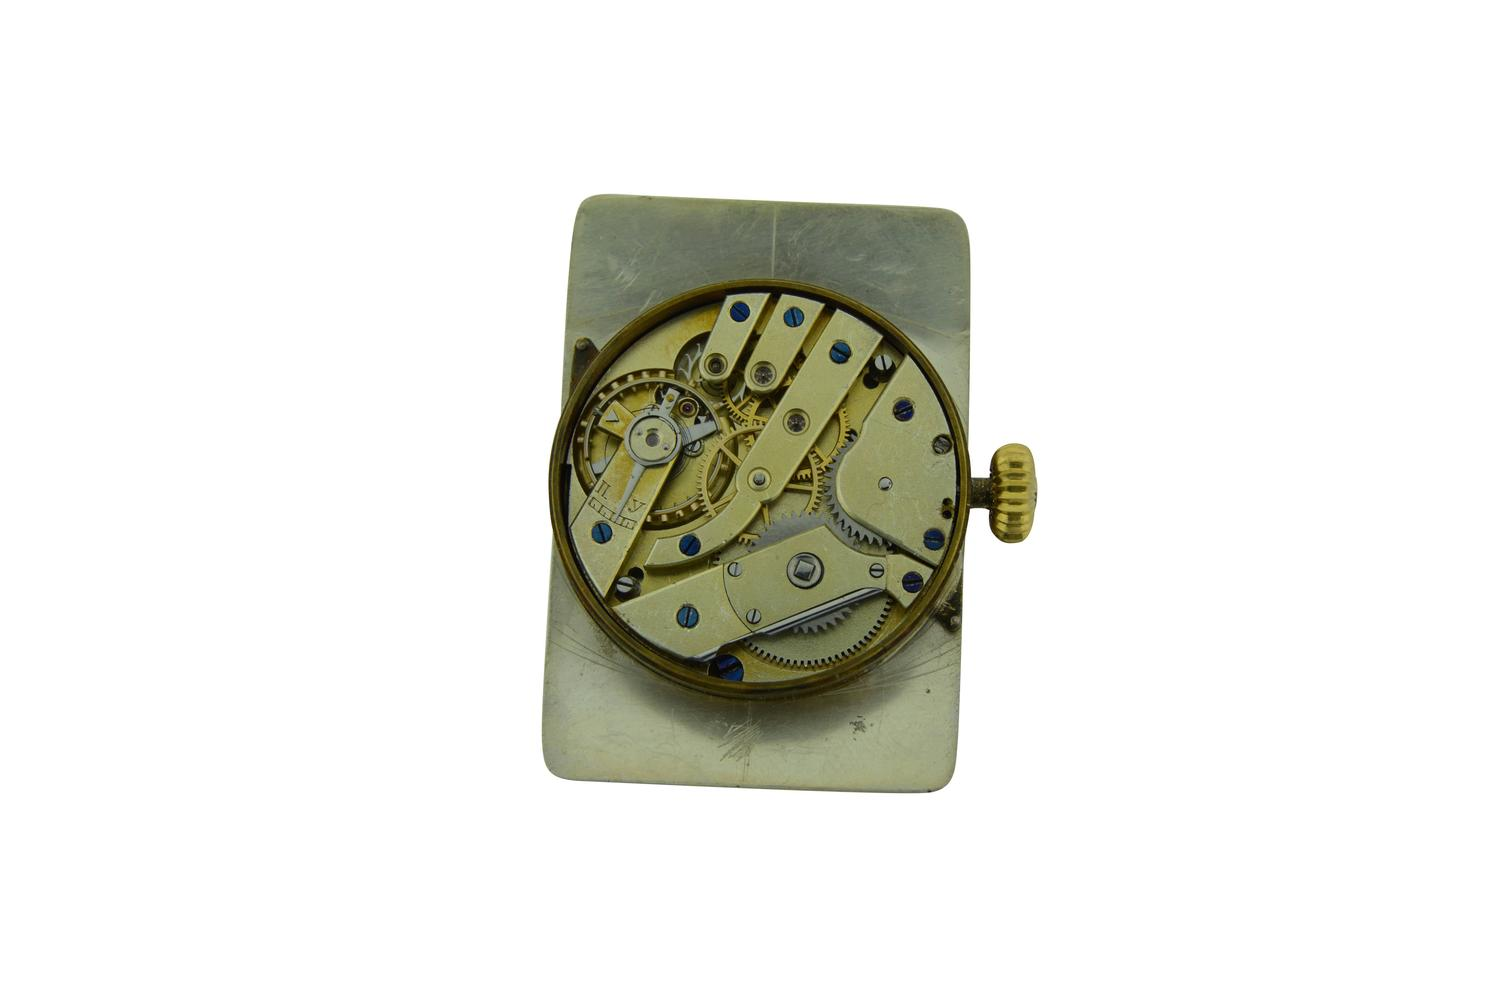 H. Moser Gold Menu0026#39;s Wrist Watch Gondolo Style For Sale at 1stdibs